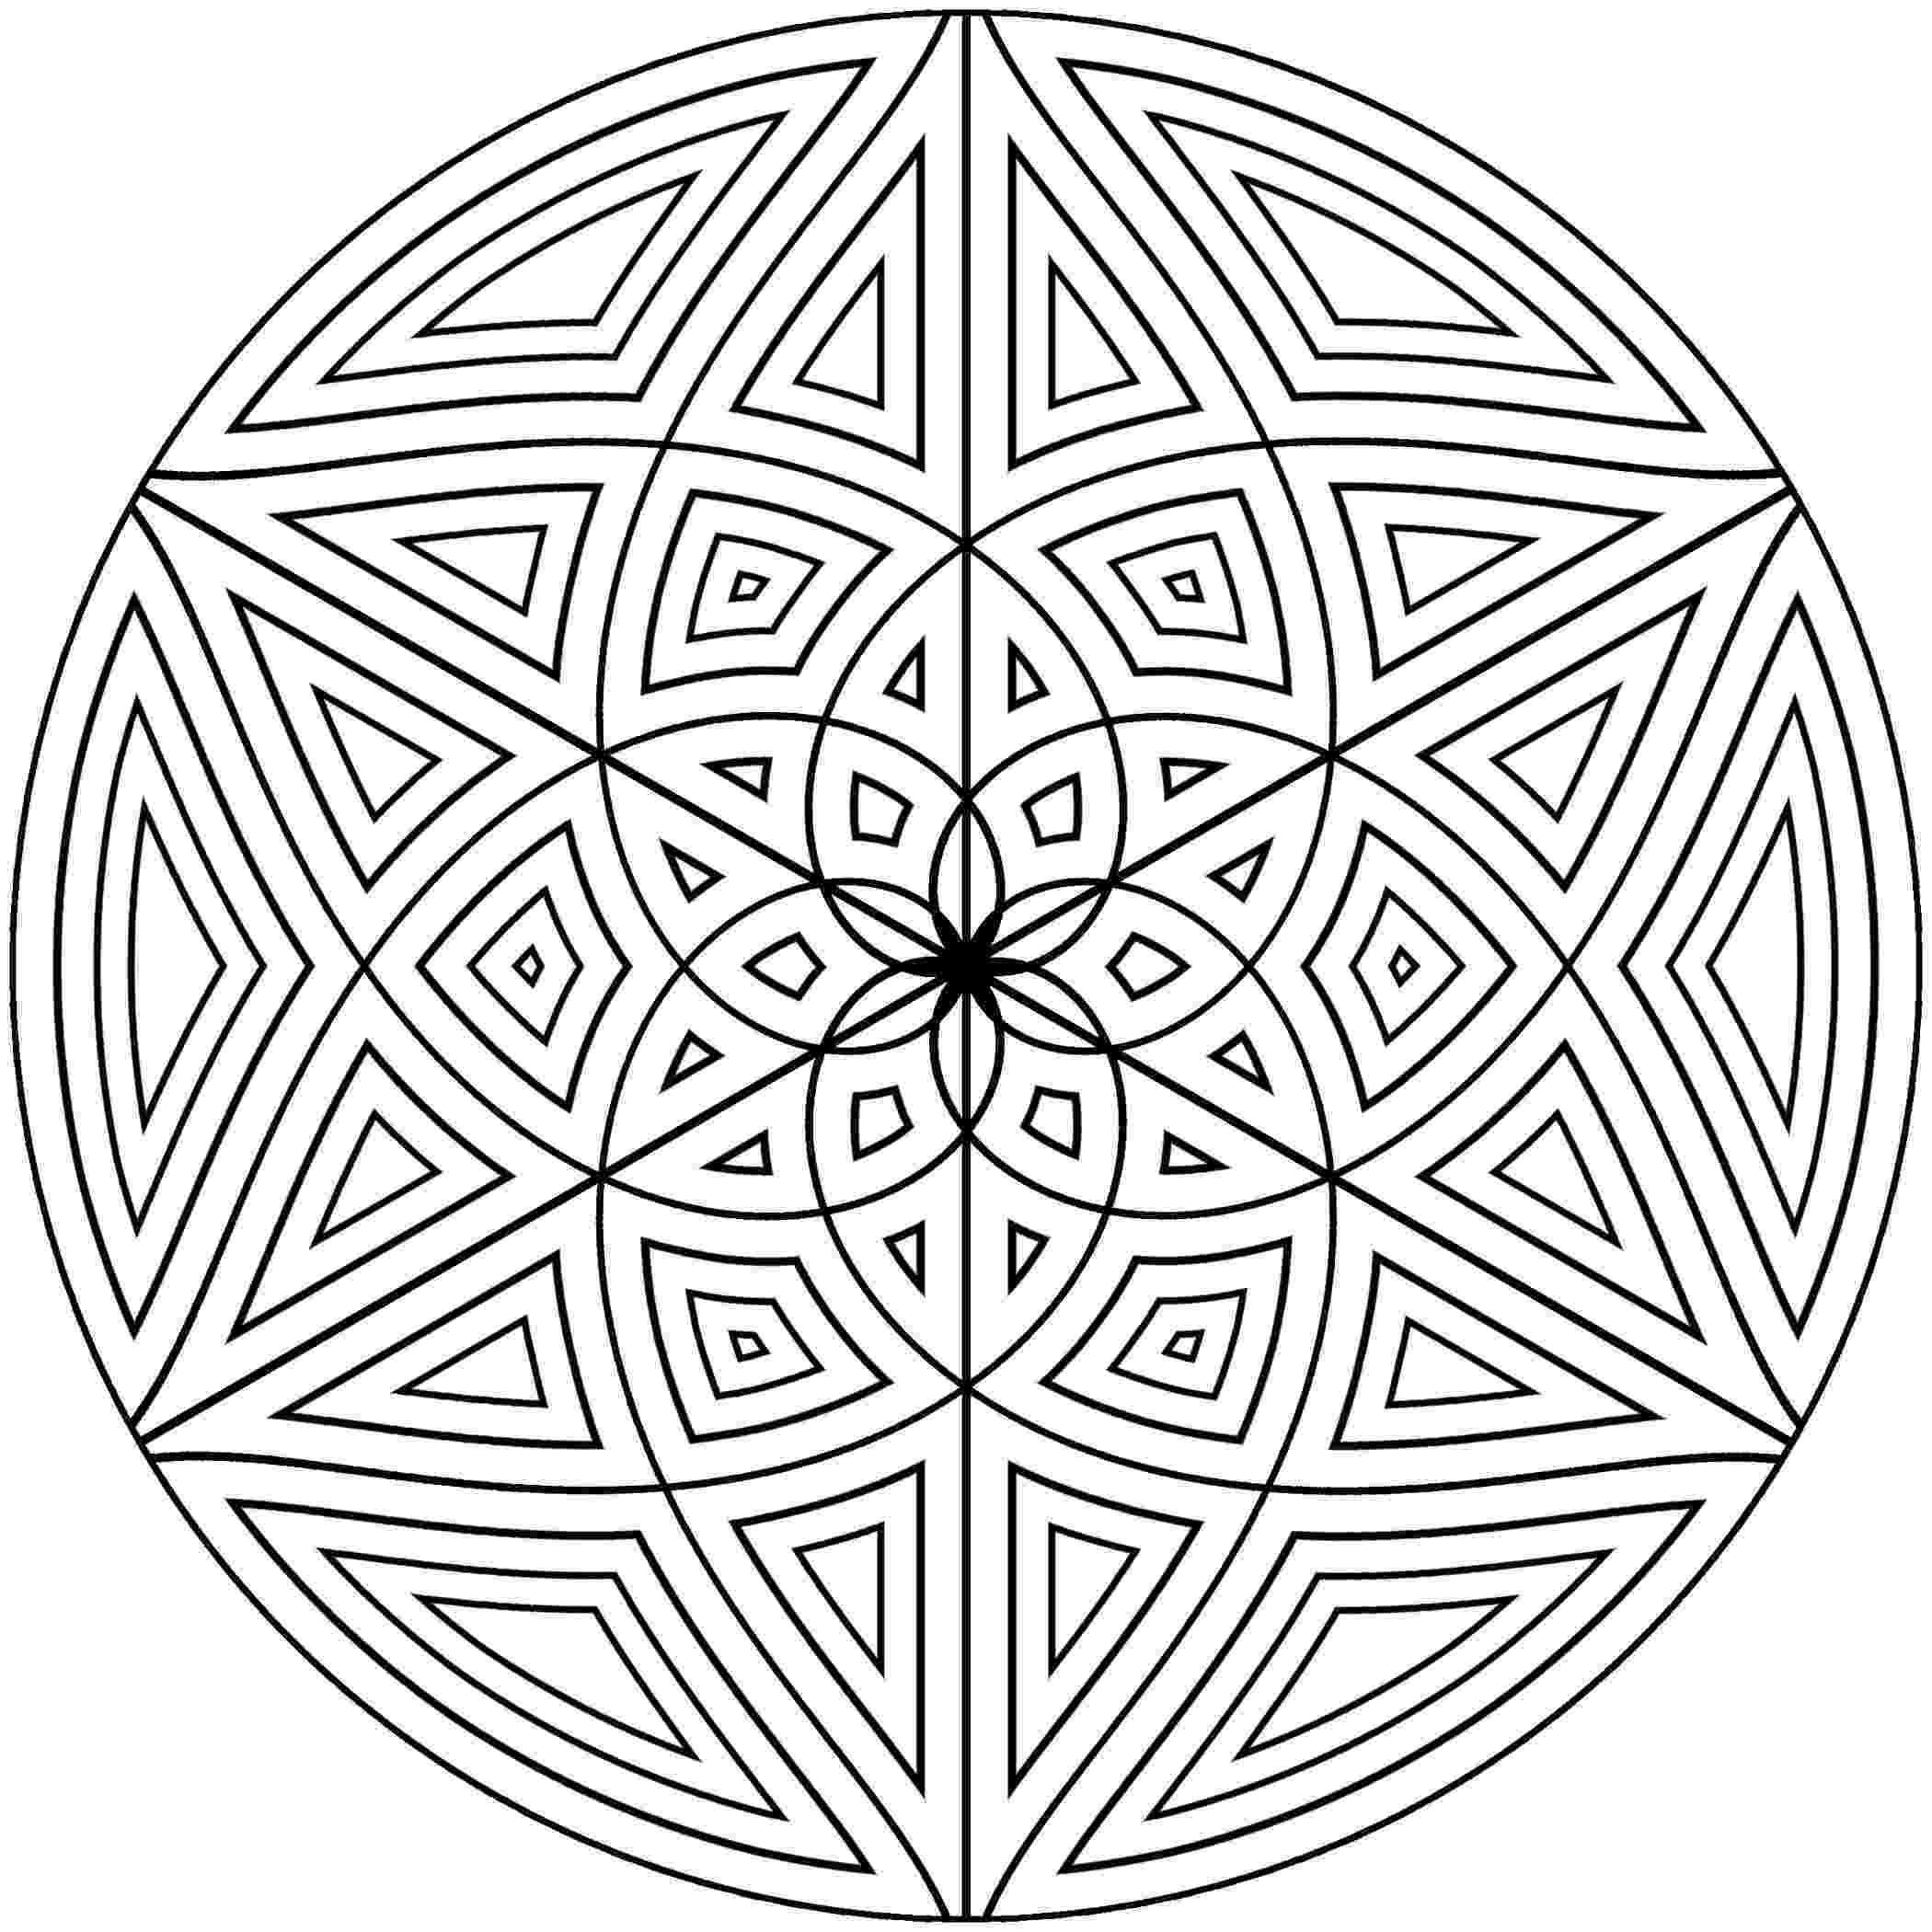 pattern coloring page pattern coloring pages best coloring pages for kids coloring page pattern